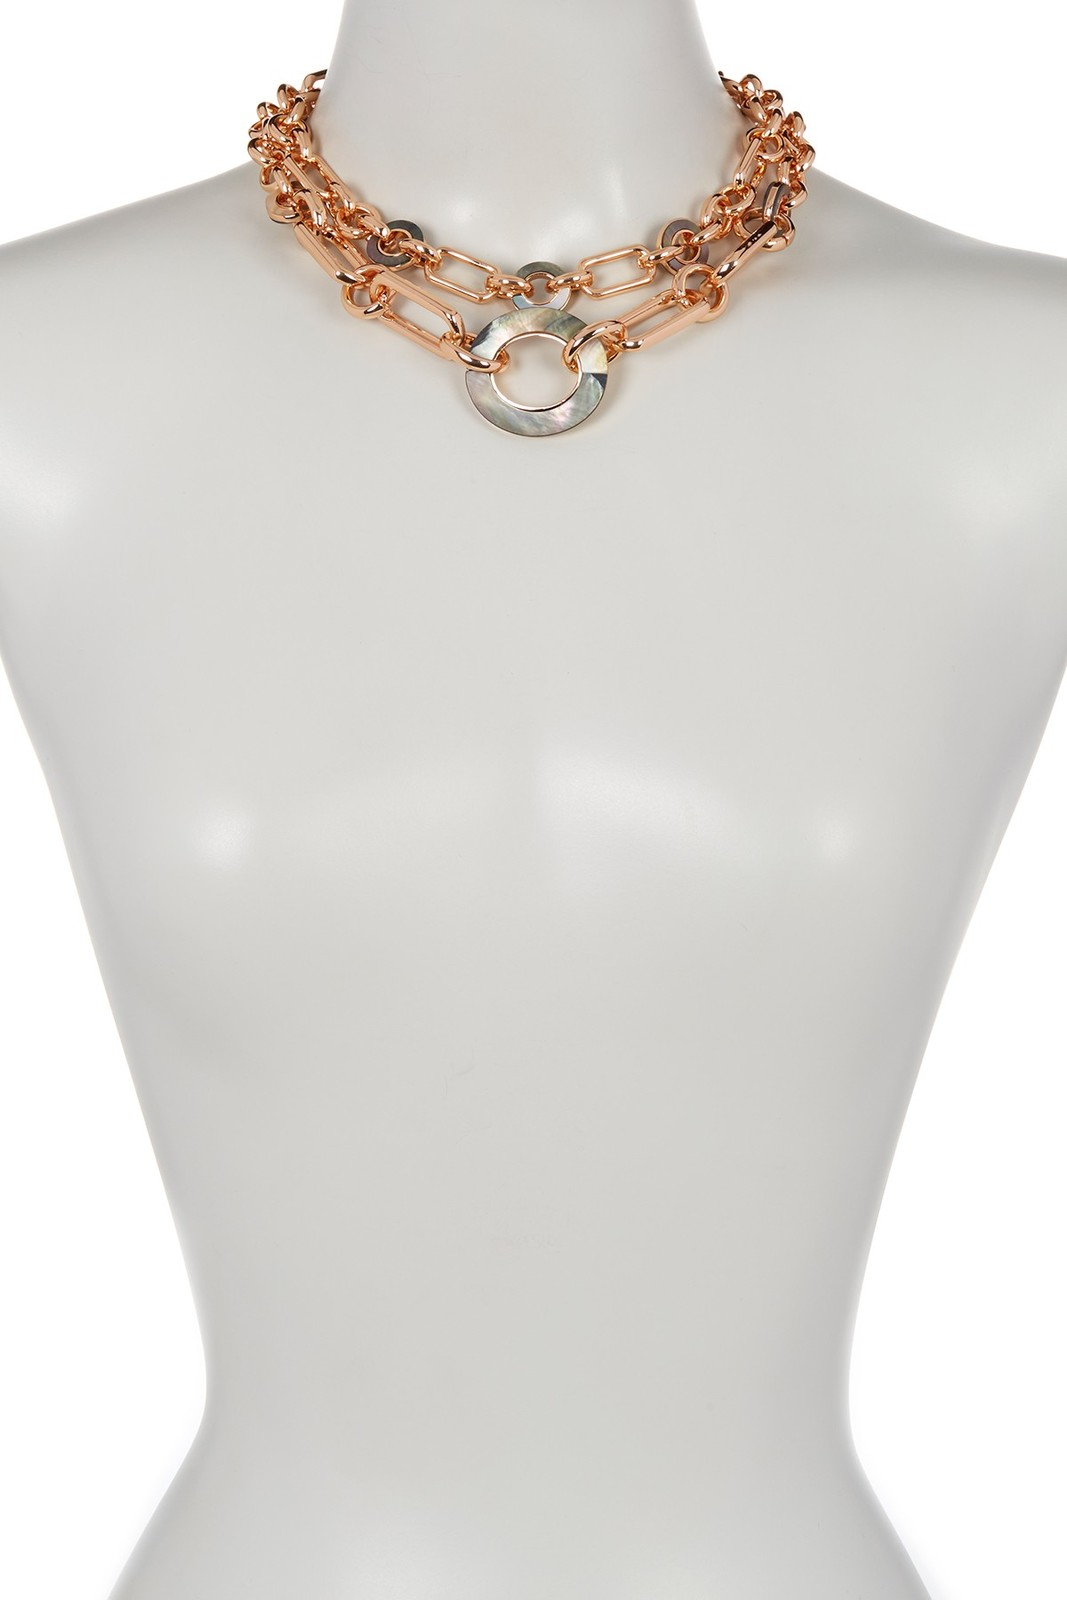 Primary image for Vince Camuto Chain Link Layer Necklace